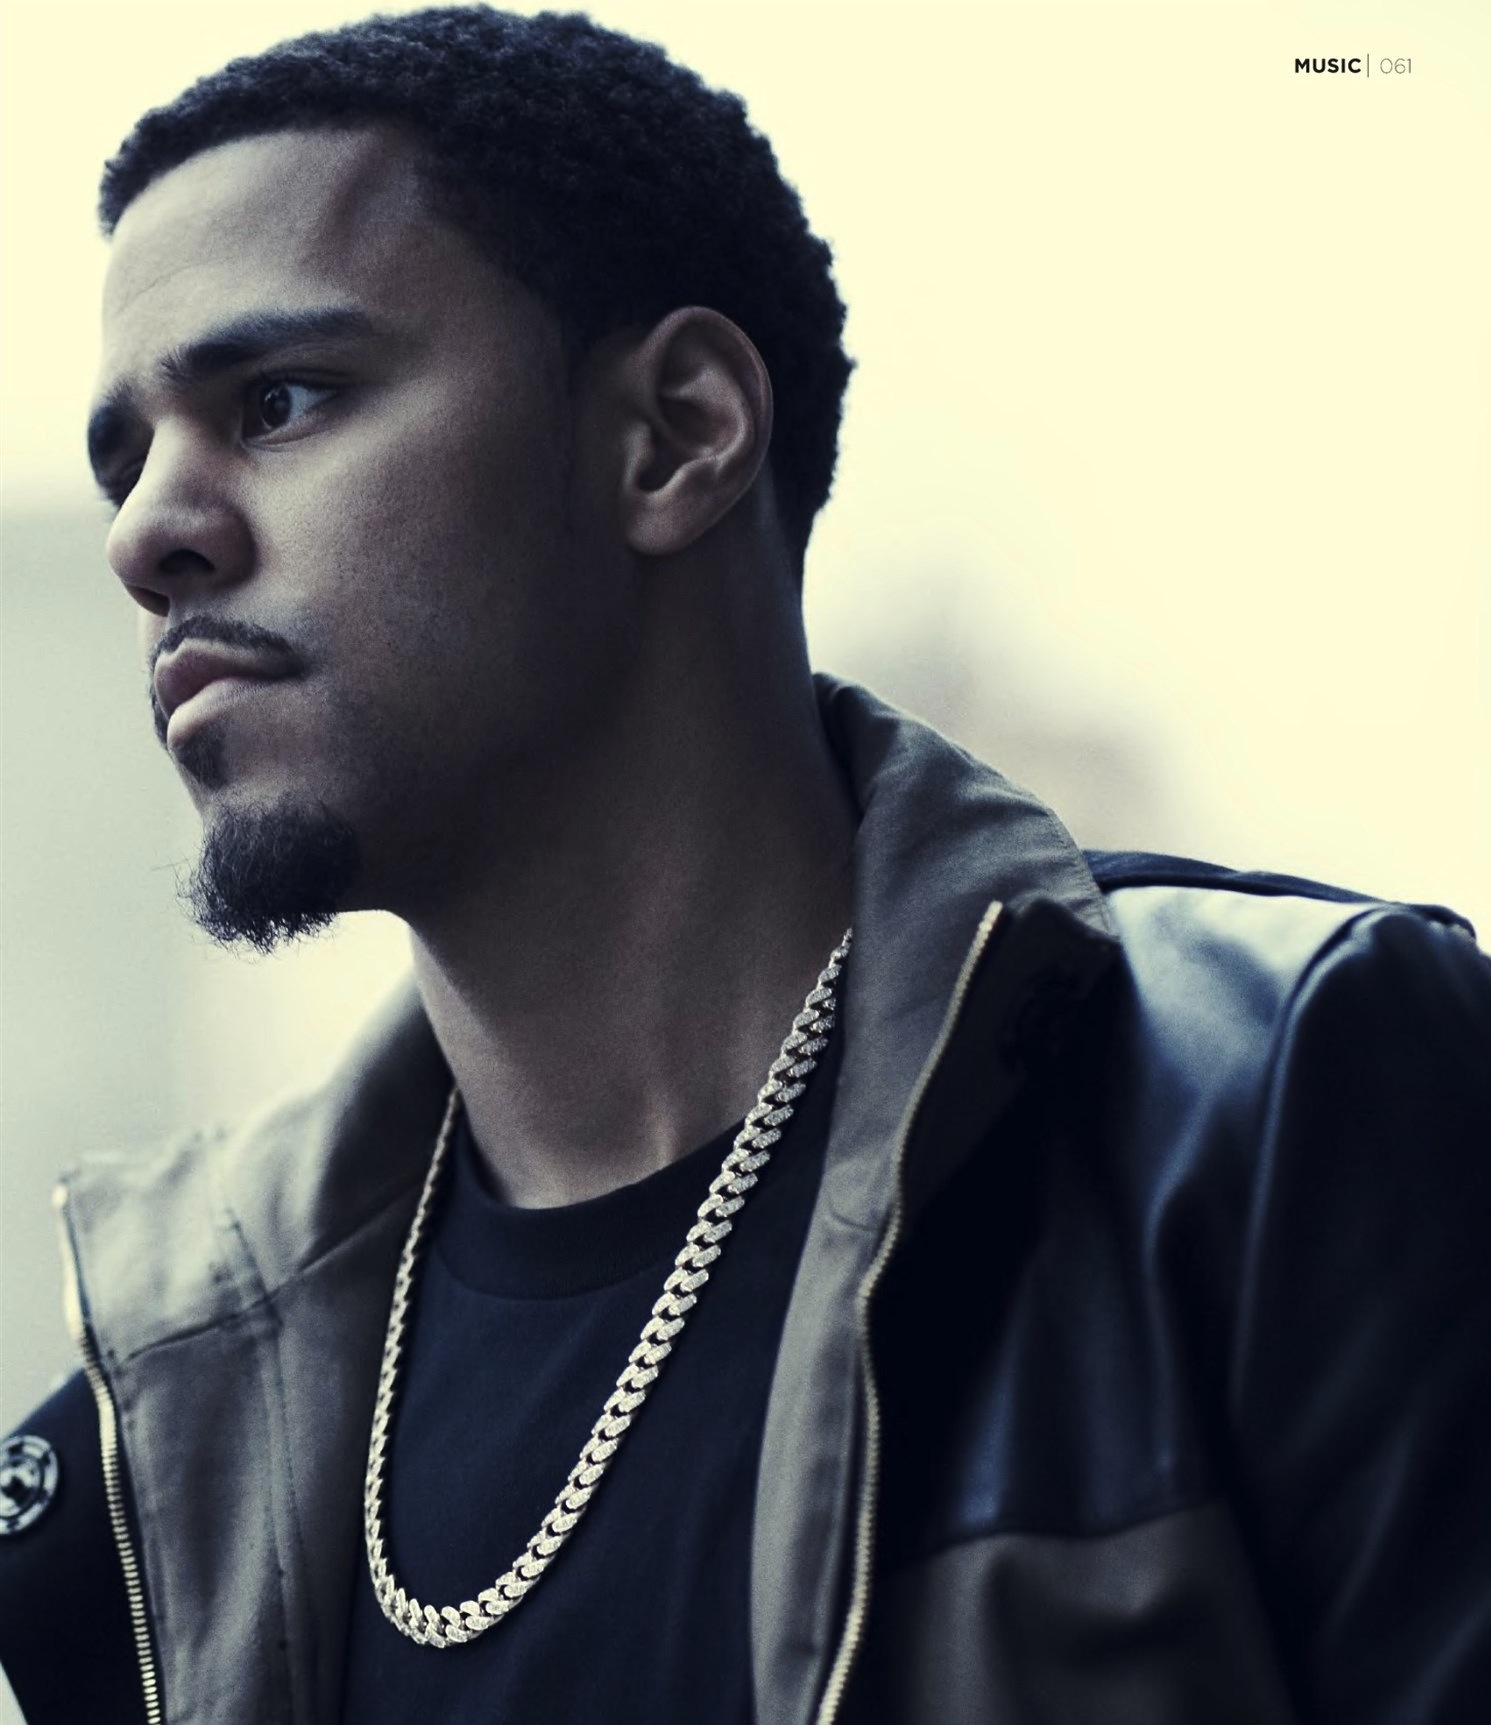 J Cole Quotes 2014 J Cole Quotes From 201...